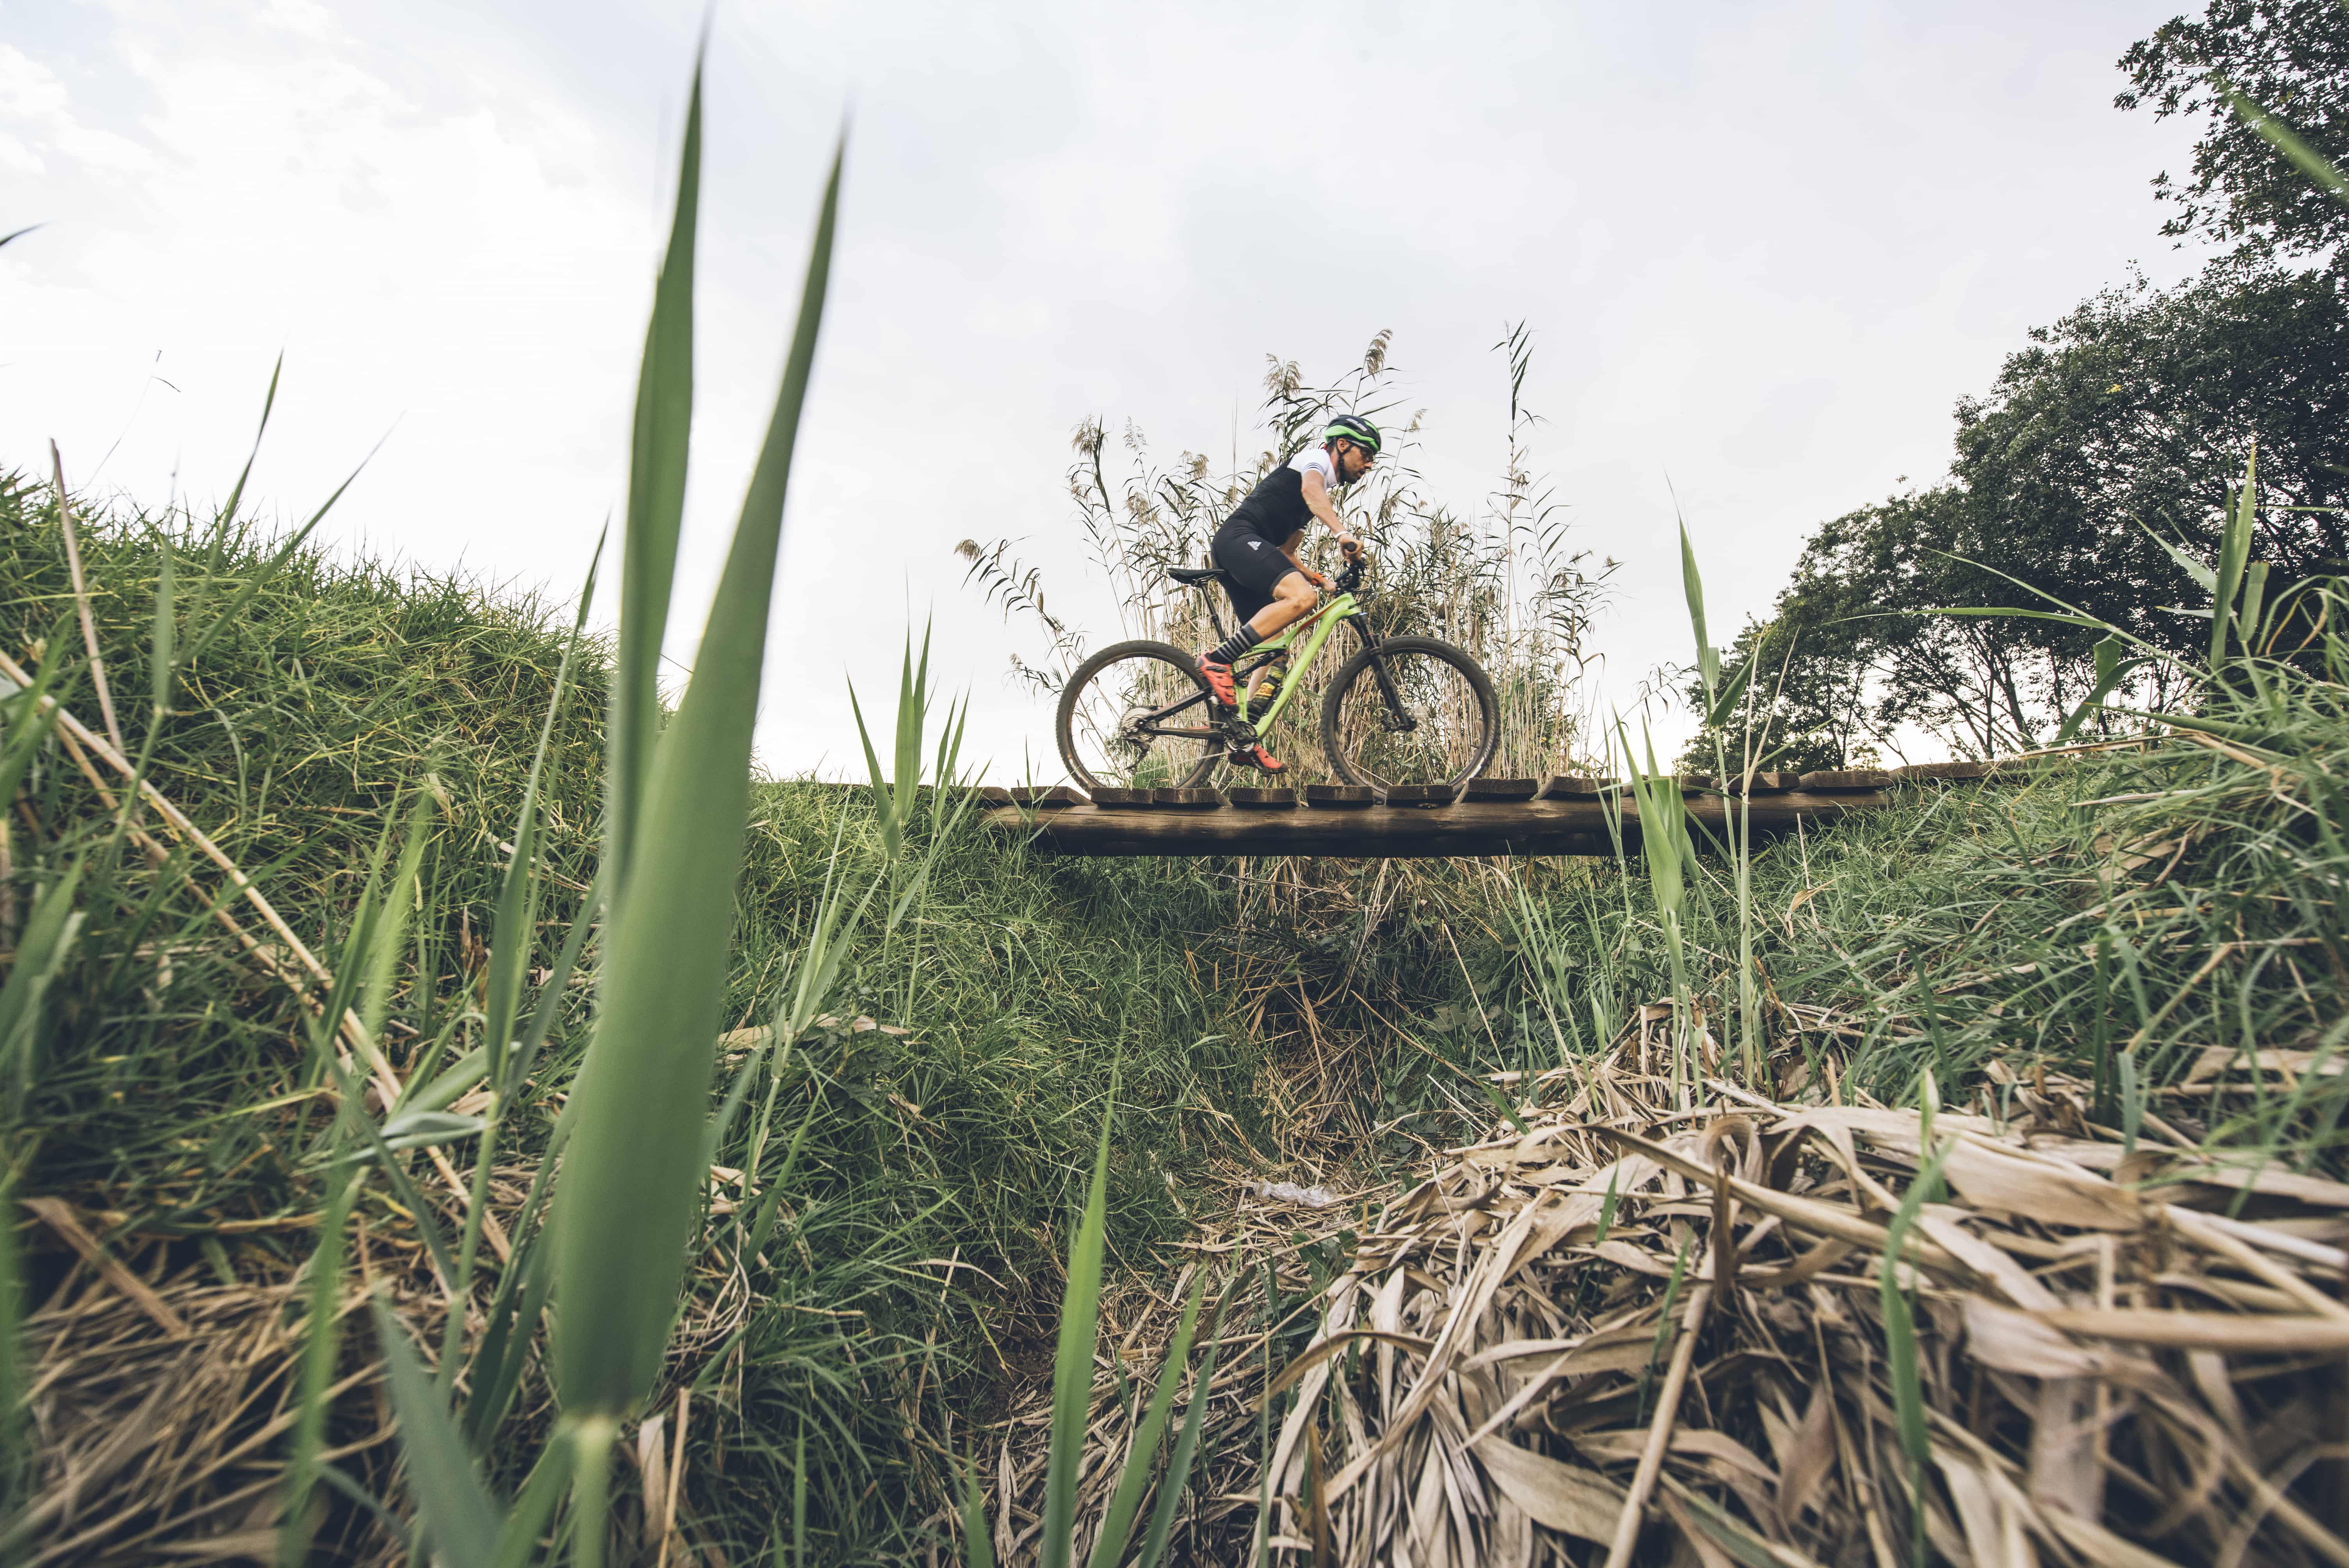 wow-rides-die-spruit-bicycling-magazine-dna-photograpers-9